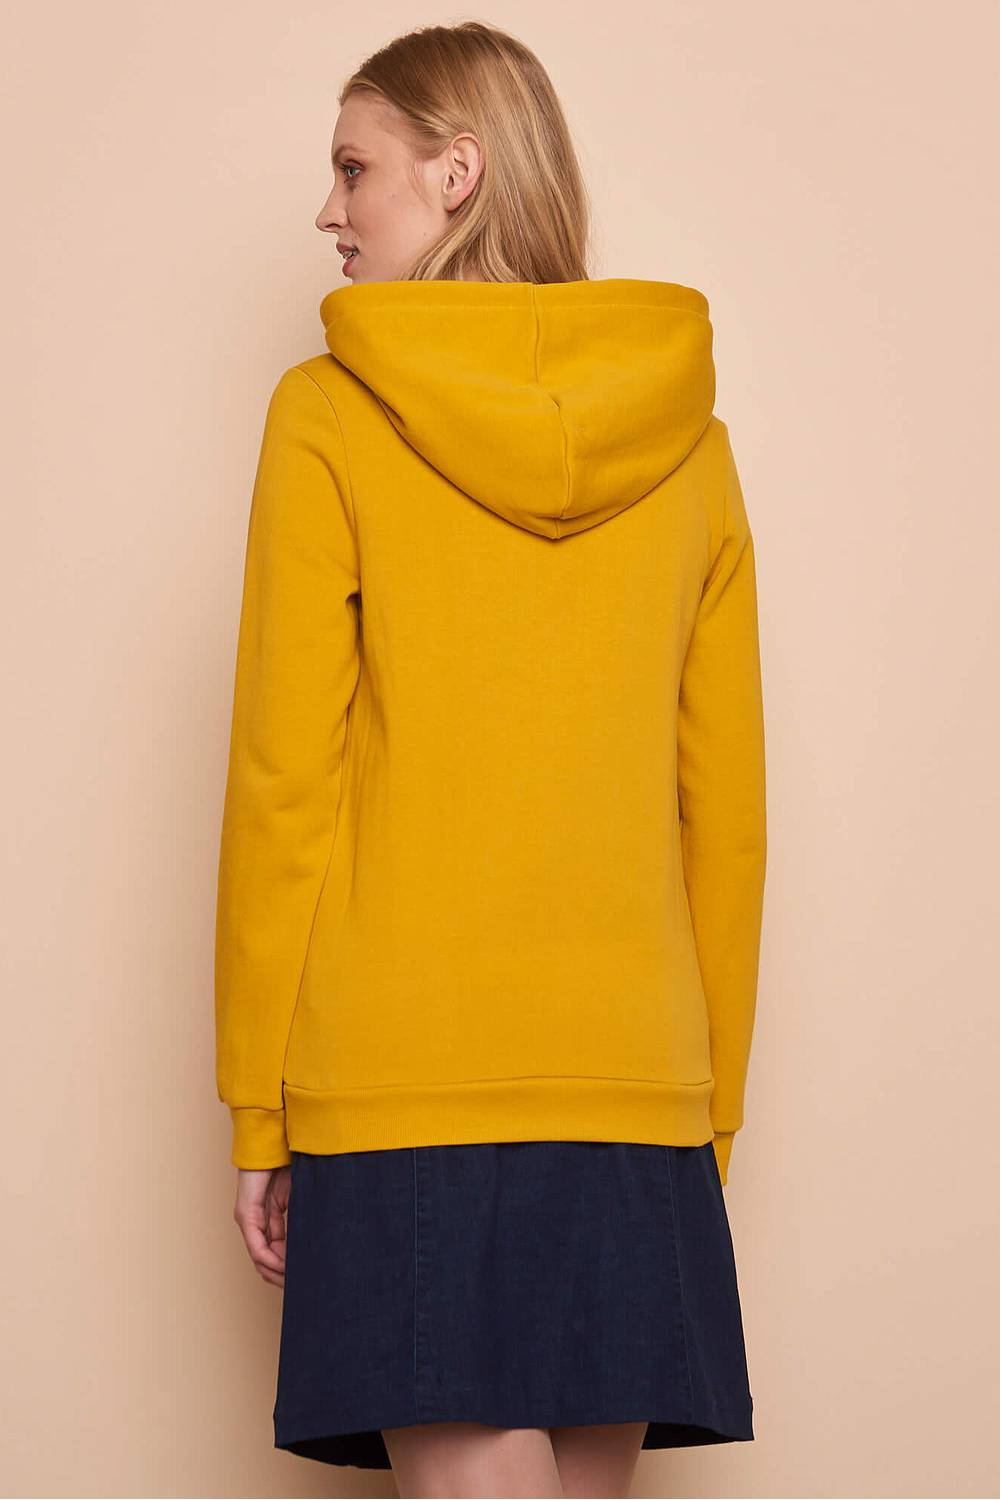 Sweater KARITA curry conciencia